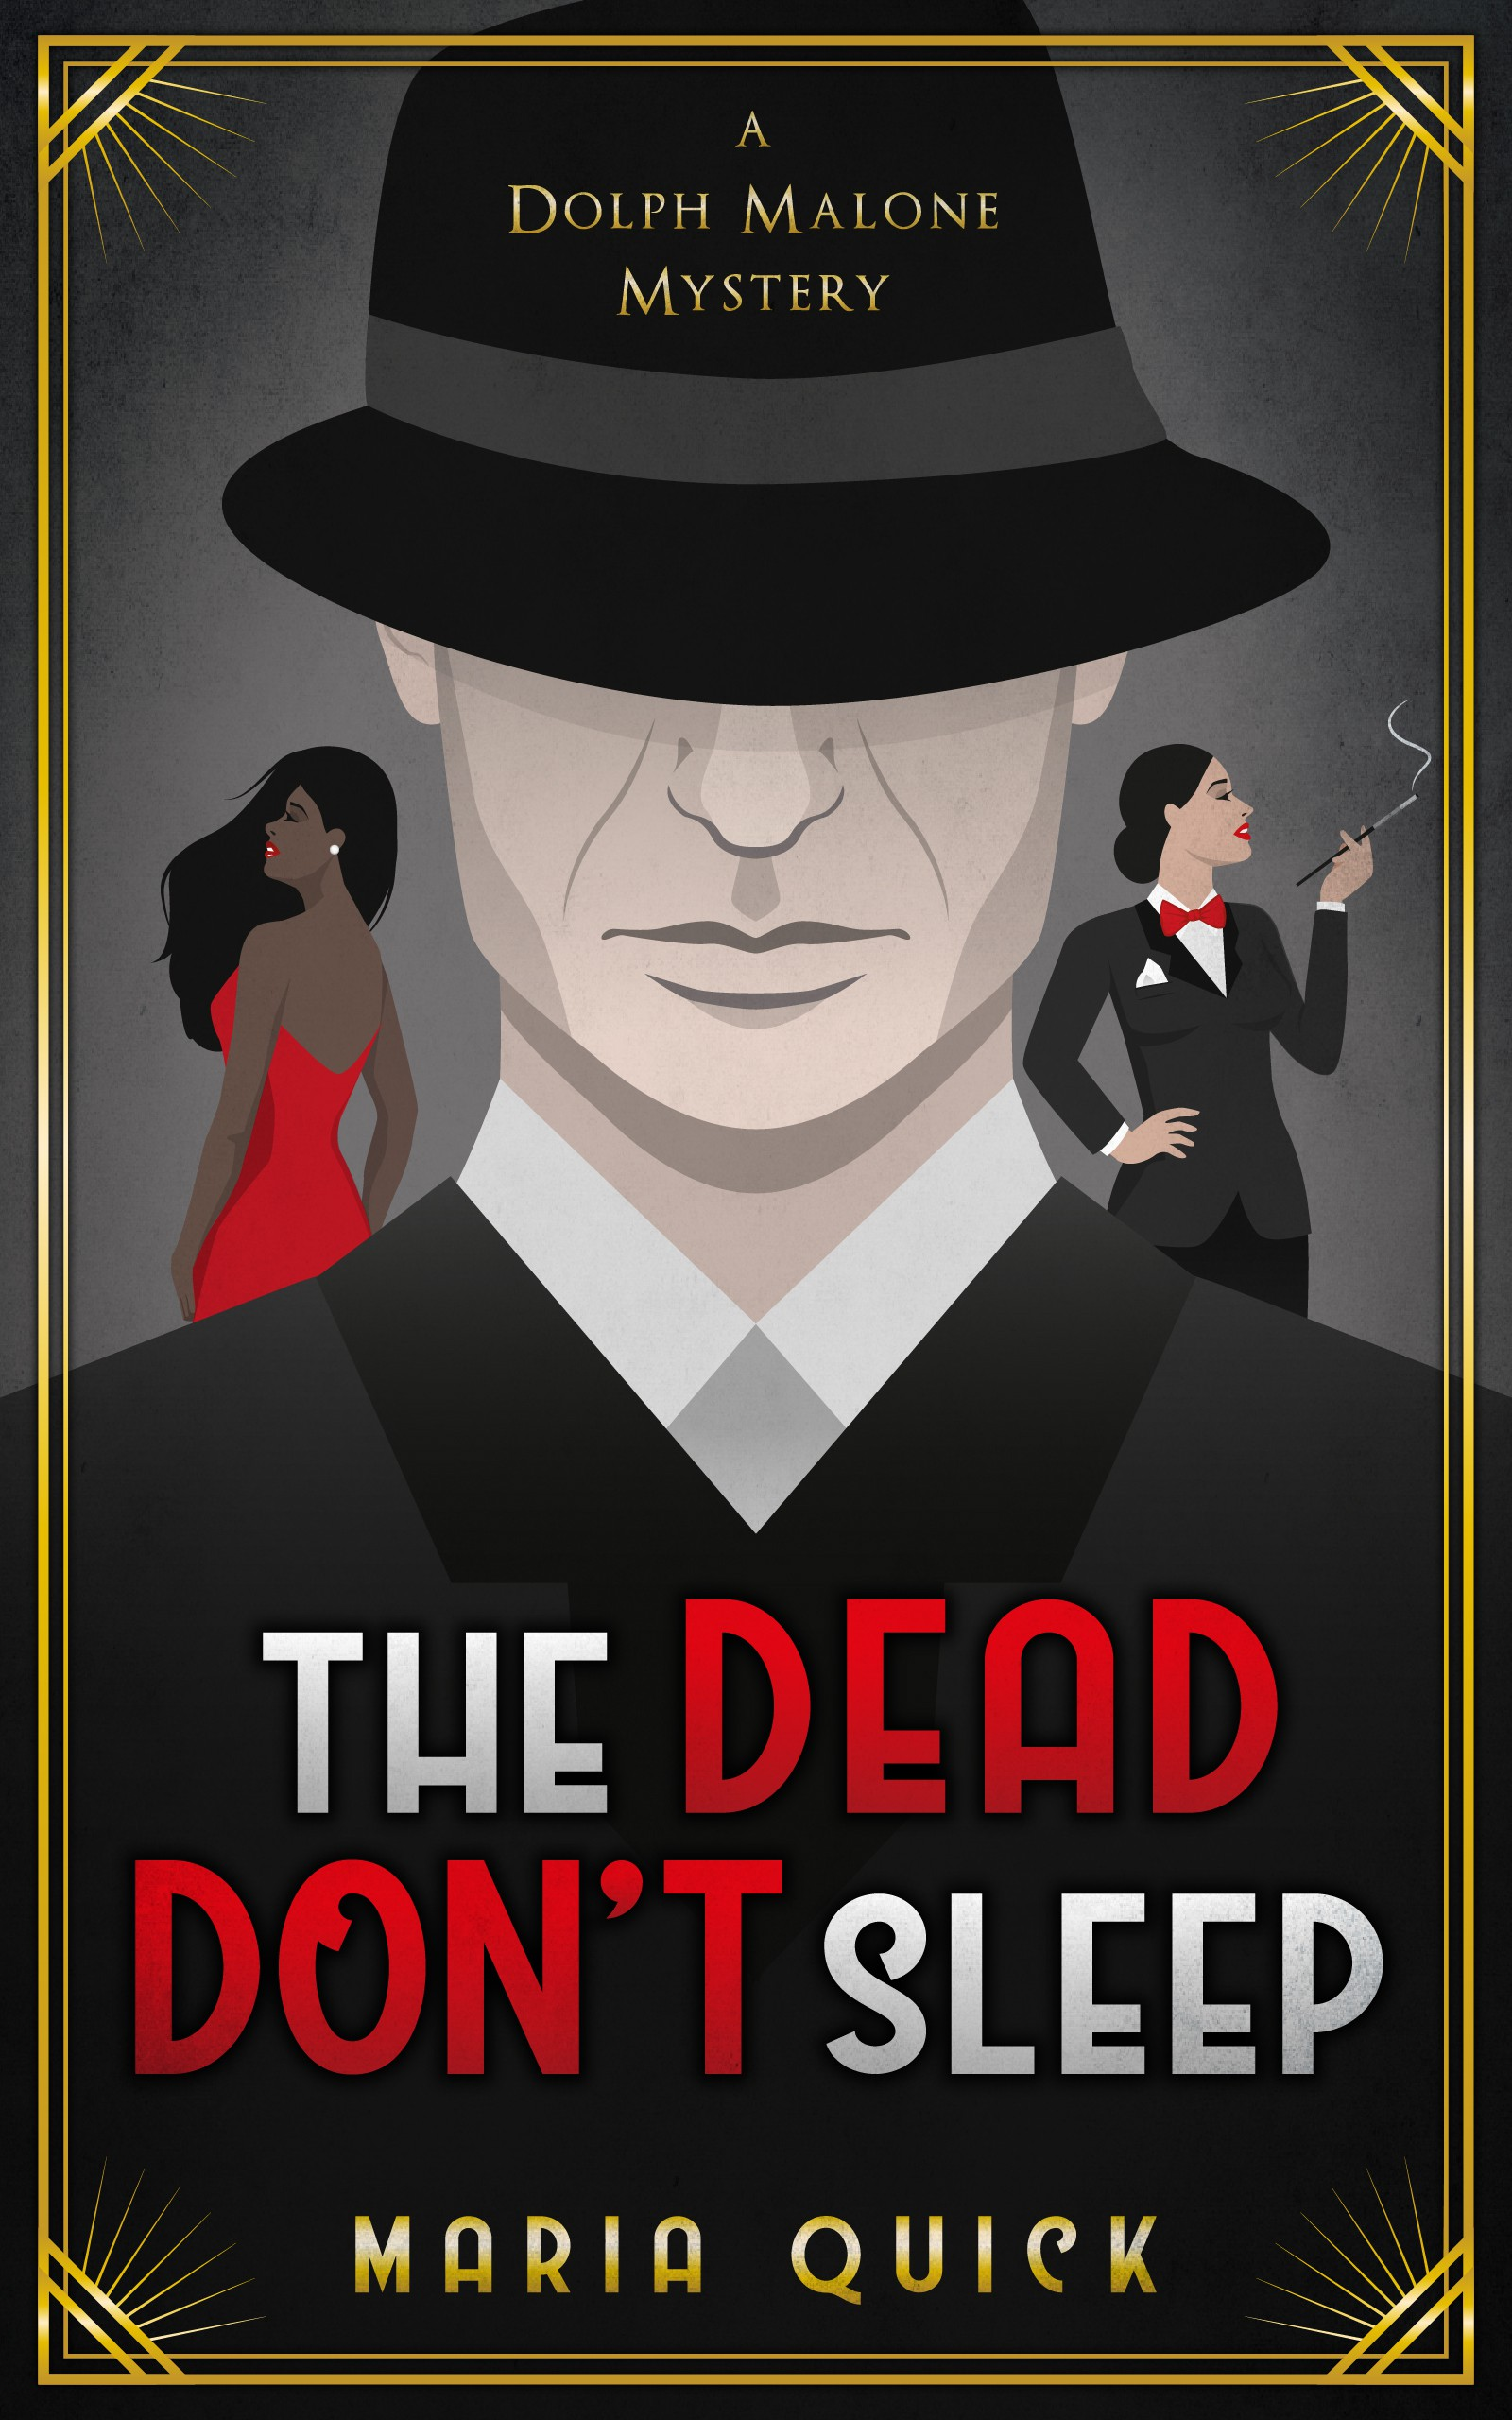 eBook cover for 1930s noir detective story with magic